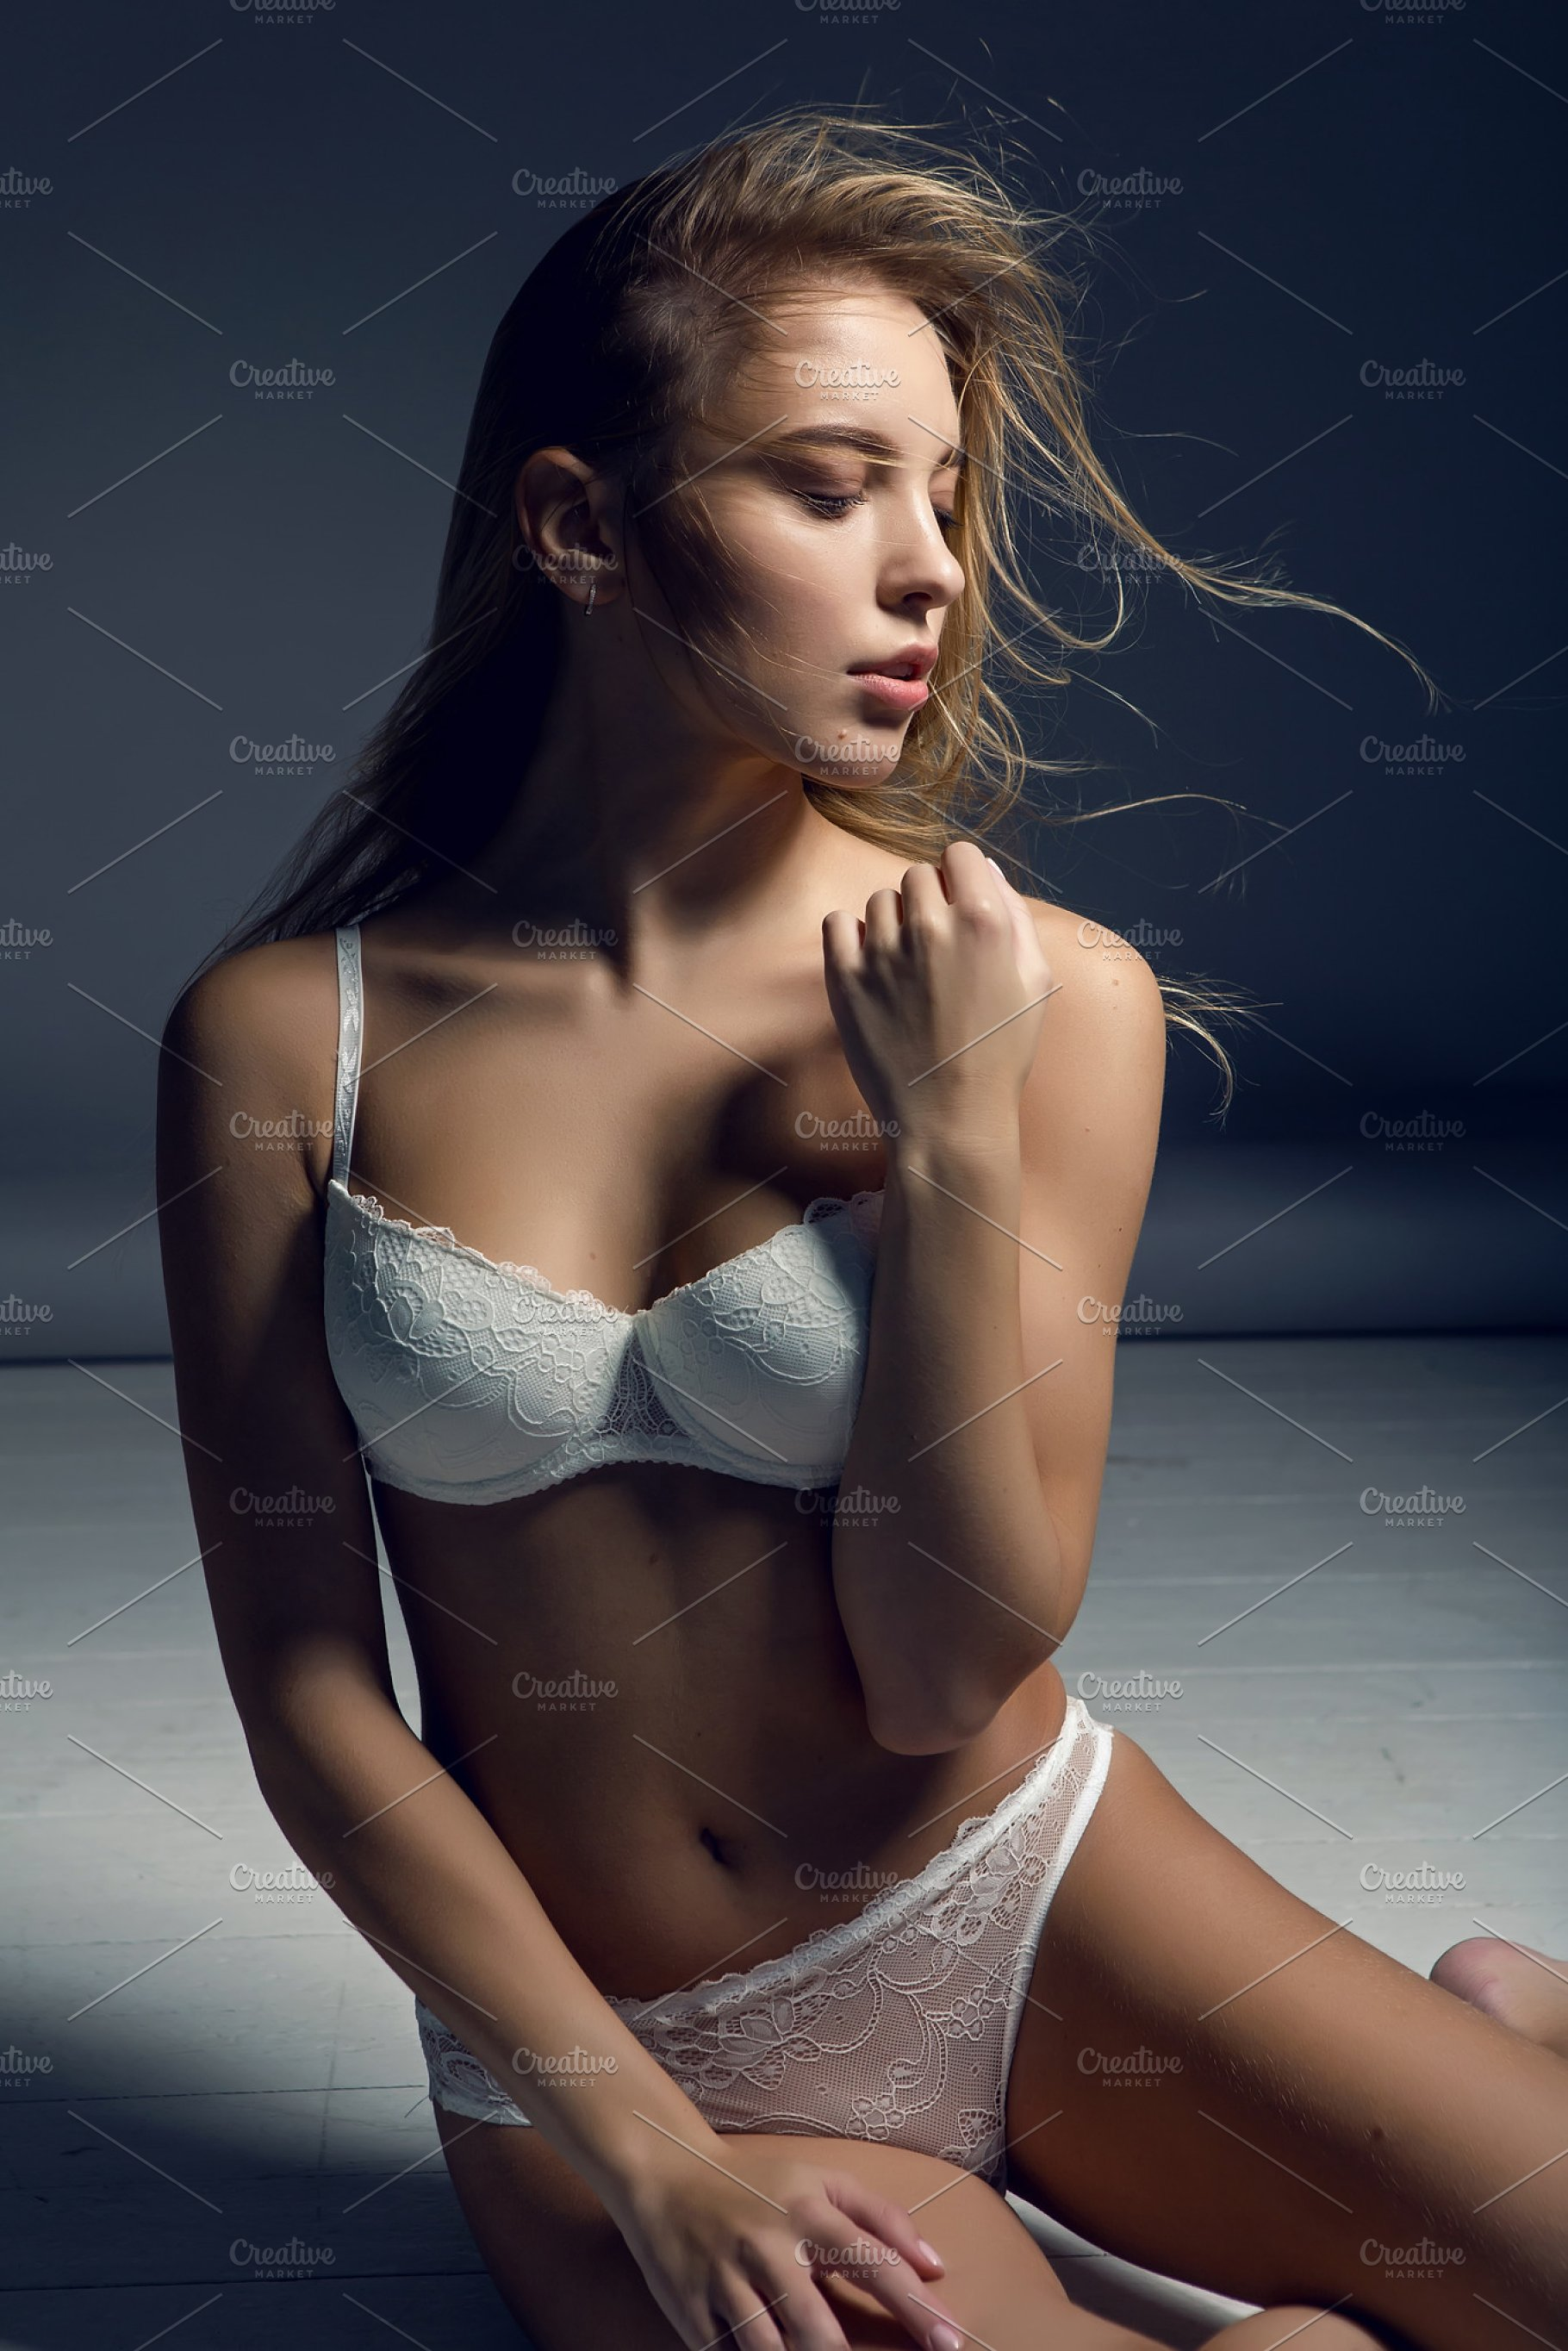 c5df36bf6a56 young blonde girl in white underwear ~ Beauty & Fashion Photos ...